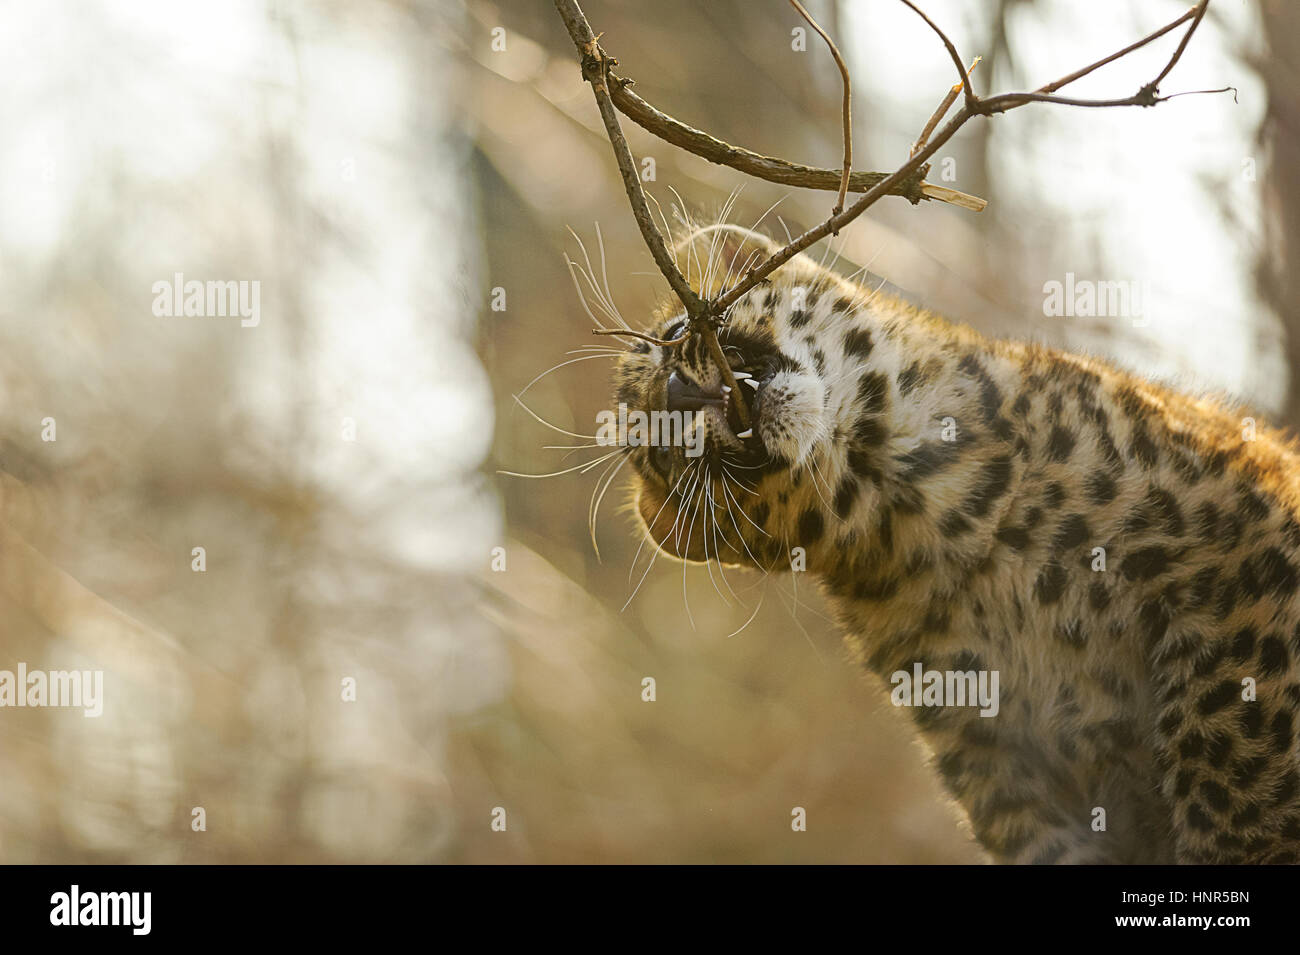 Amur leopard cub in game and bite tree branch - Stock Image